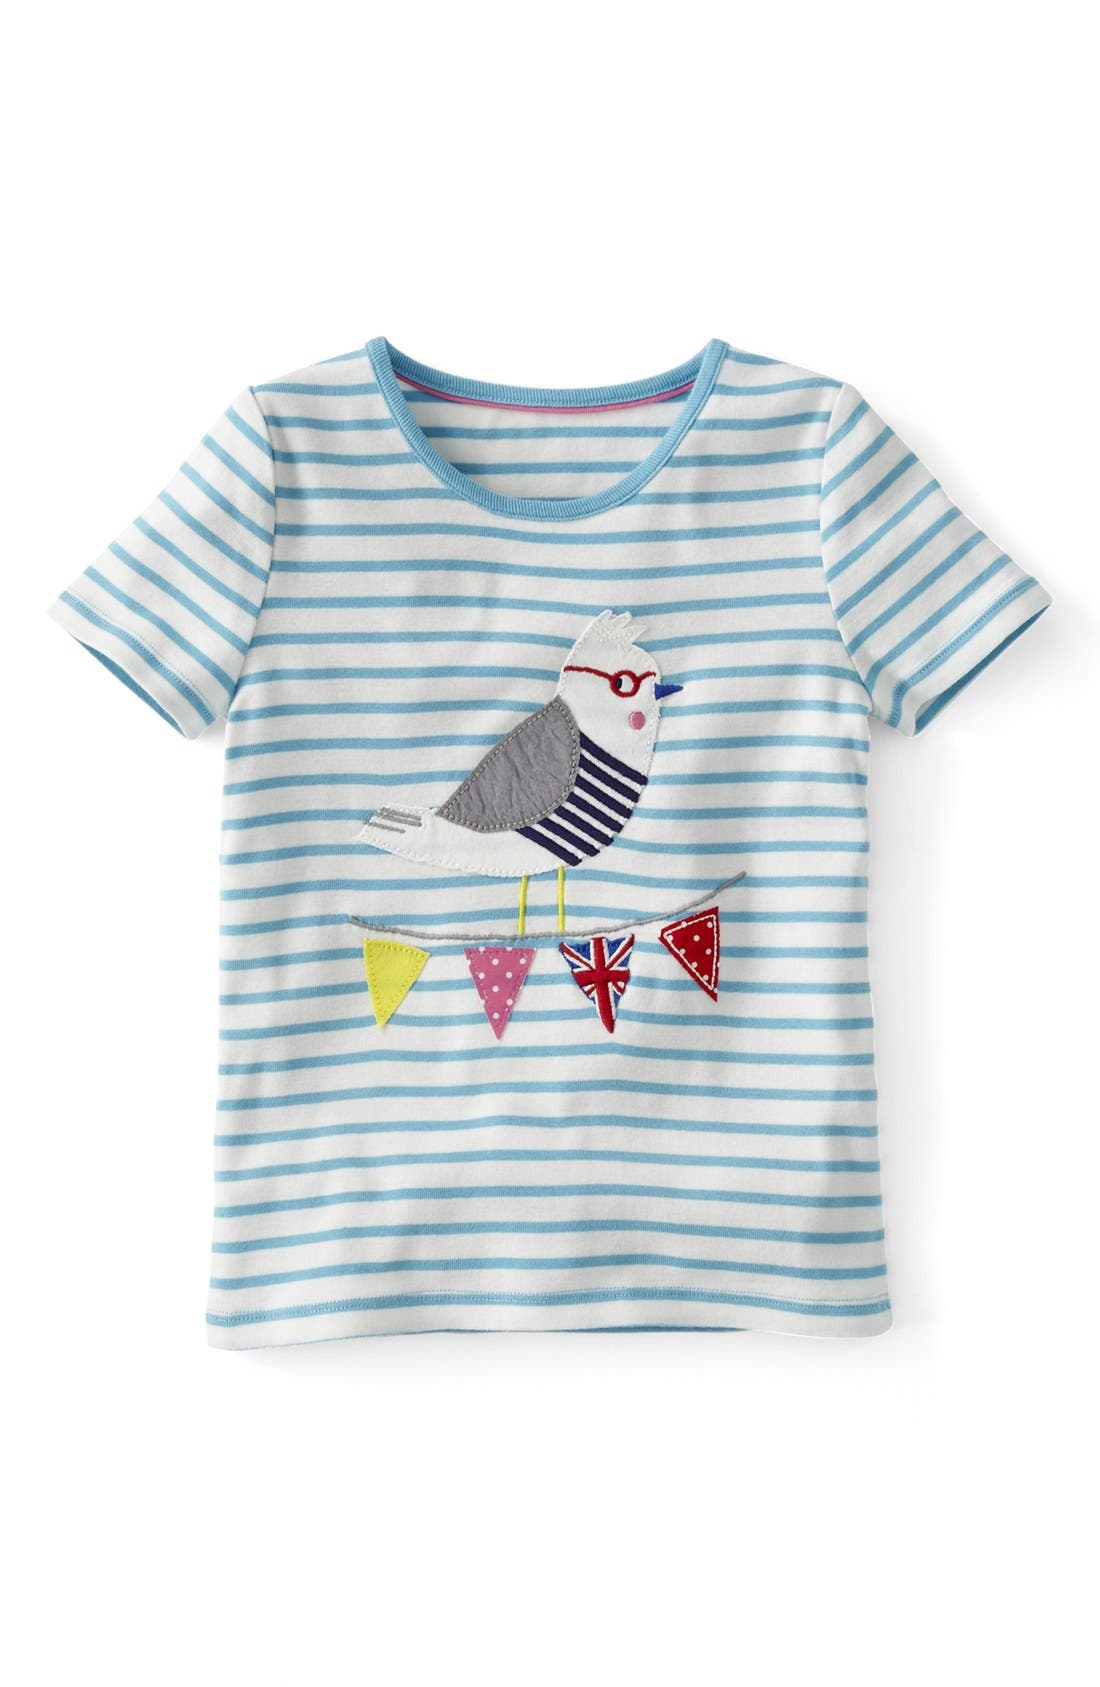 Alternate Image 1 Selected - Mini Boden 'Seaside' Appliqué Tee (Little Girls & Big Girls)